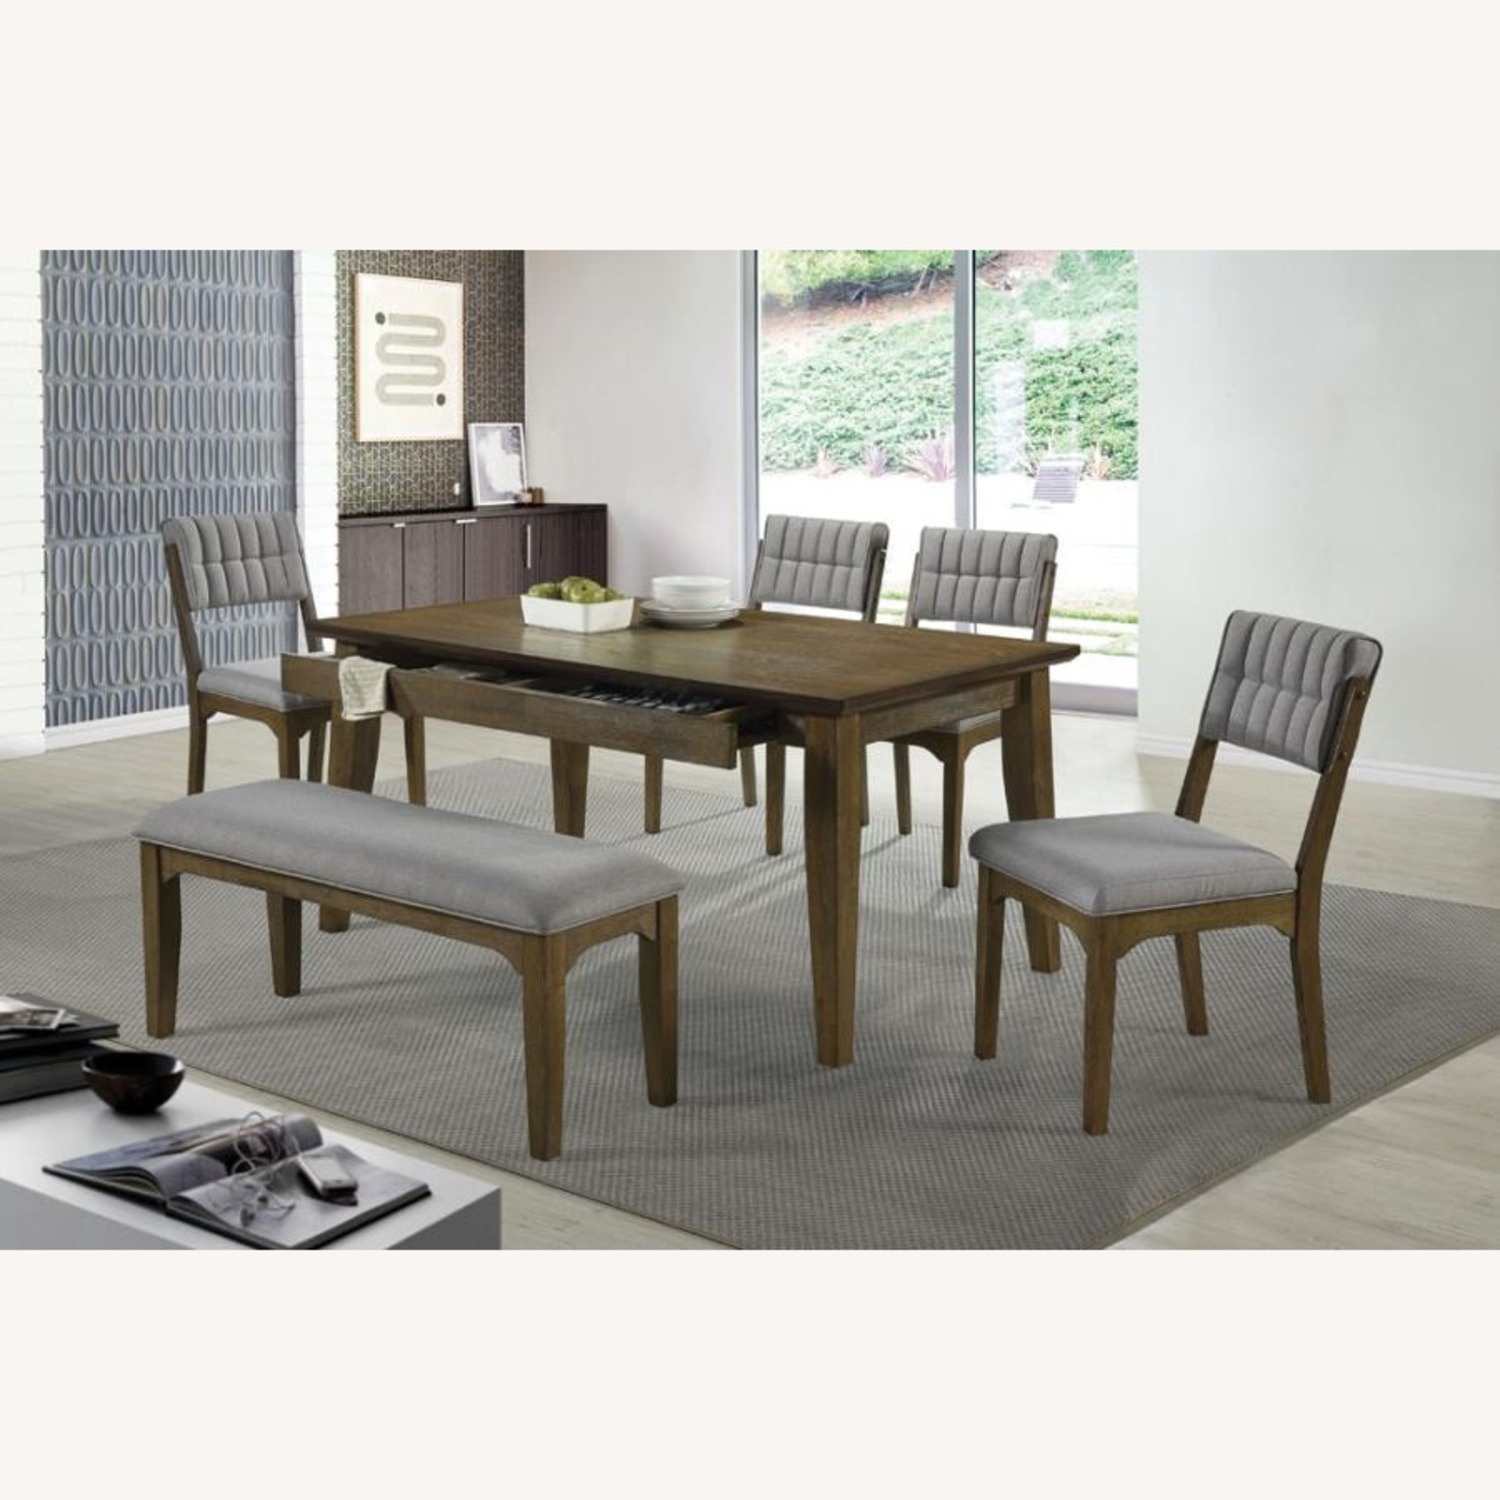 Bench In Asian Hardwood & Grey Fabric Upholstery - image-2